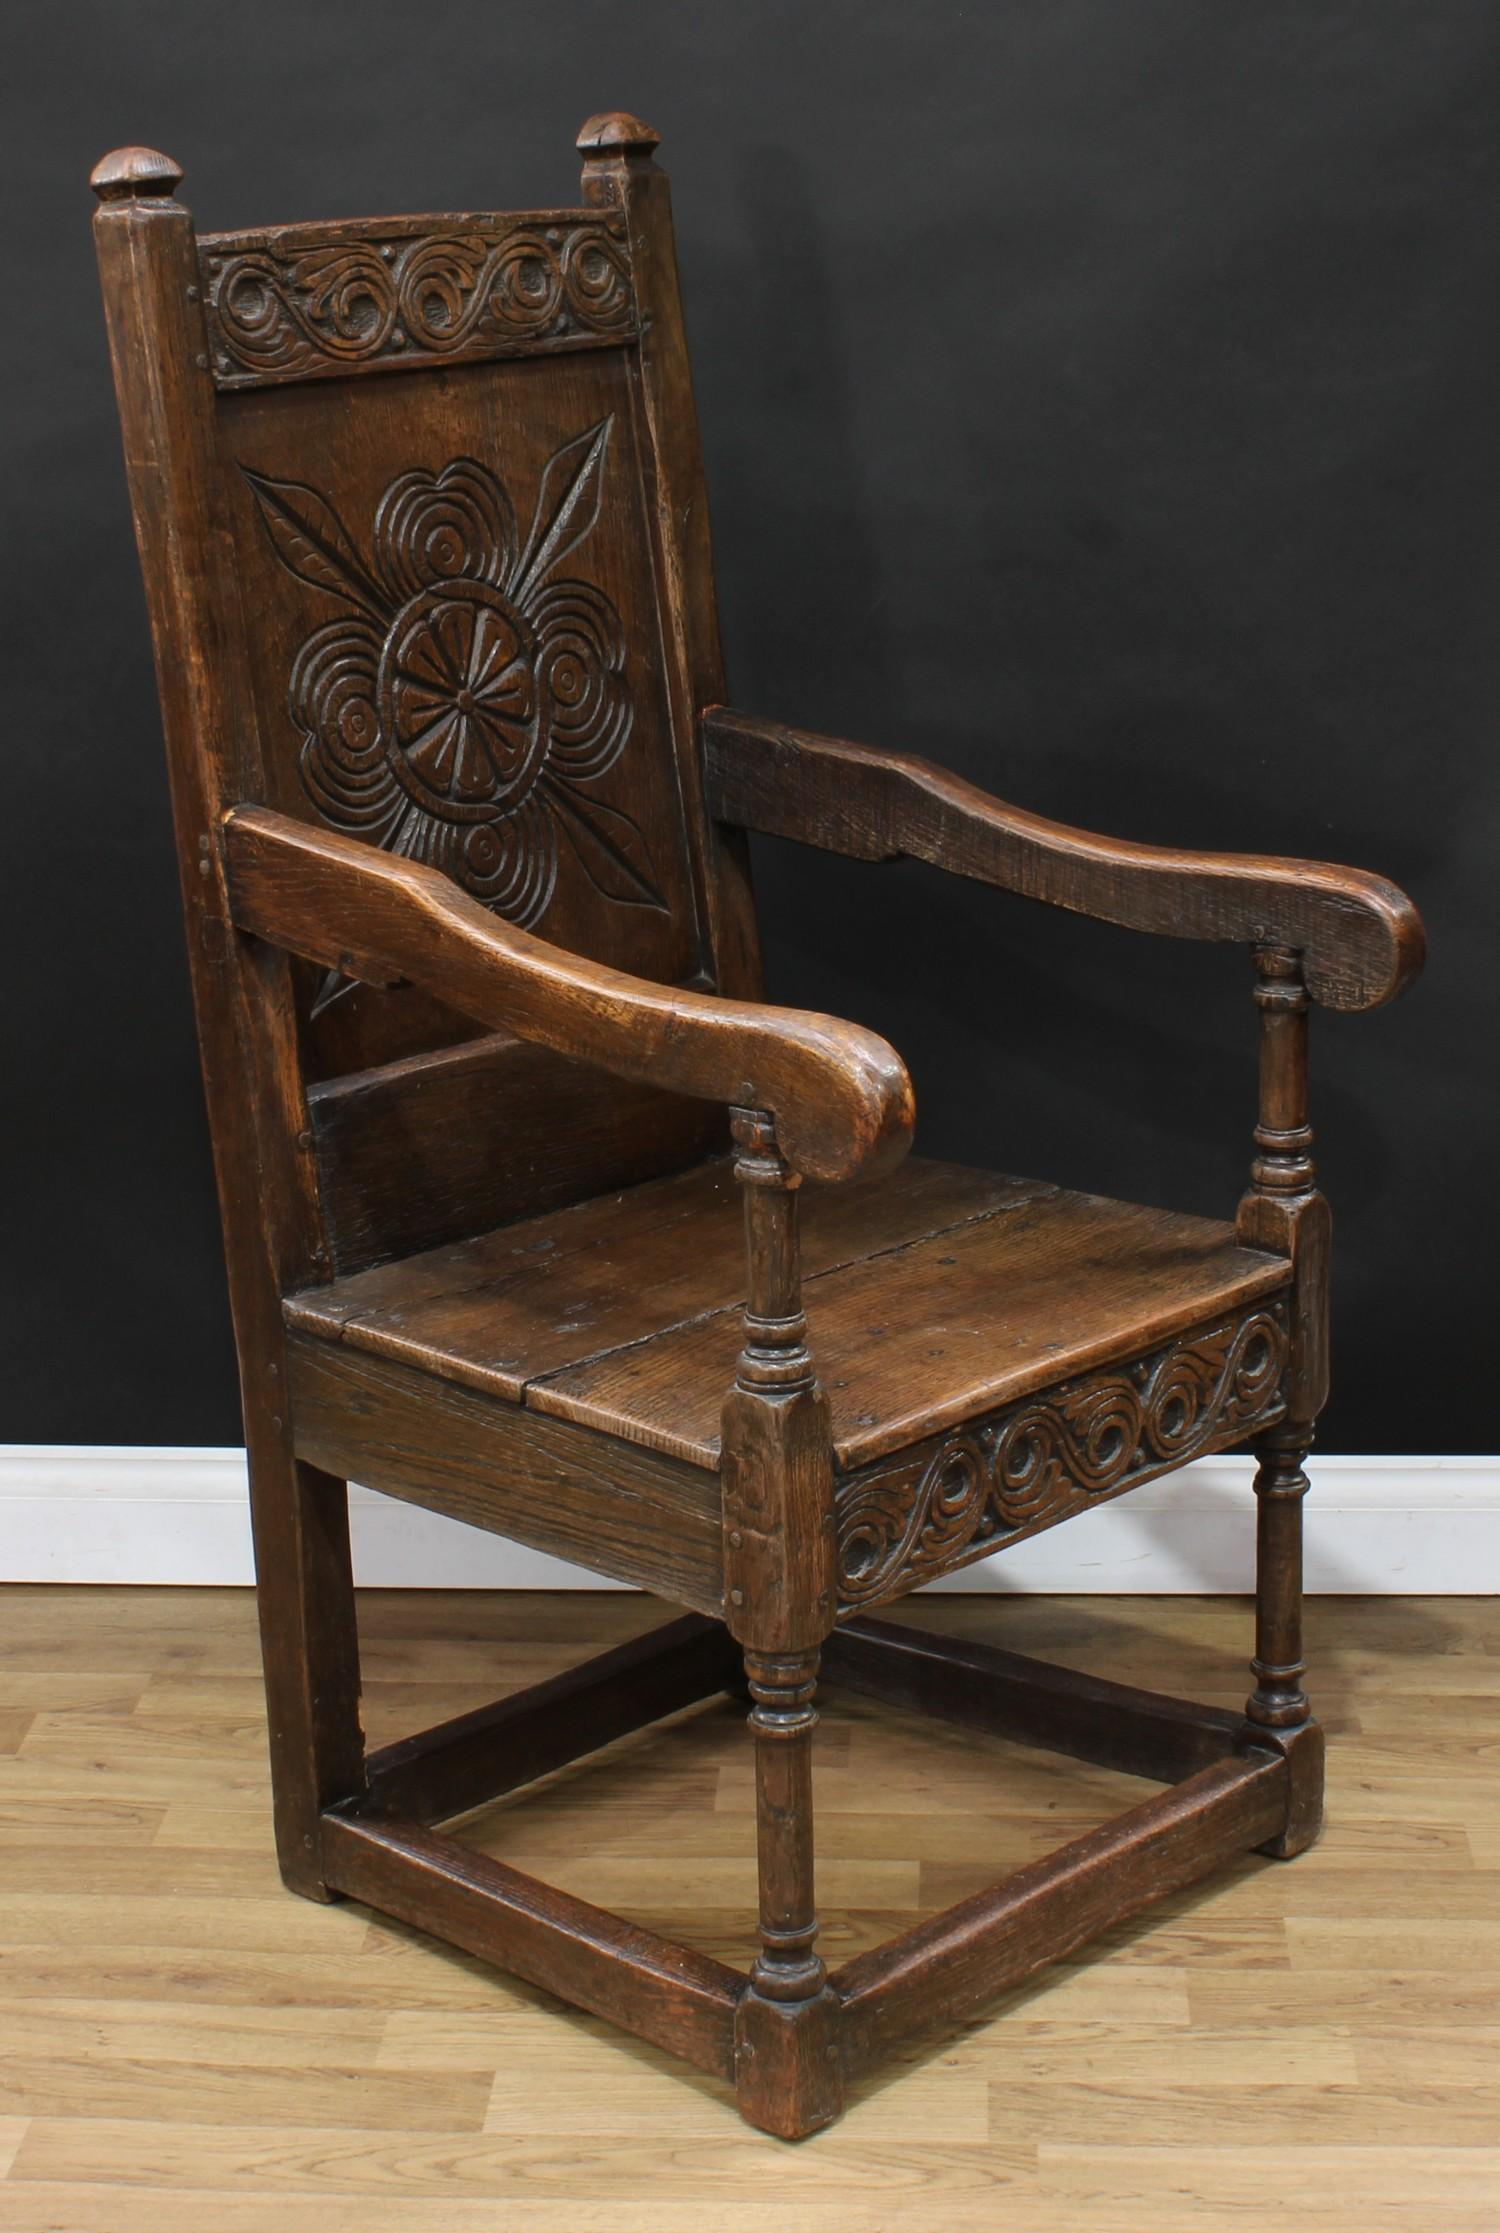 An 18th century oak Wainscot armchair, possibly Cheshire, rectangular cresting rail carved with - Image 3 of 4